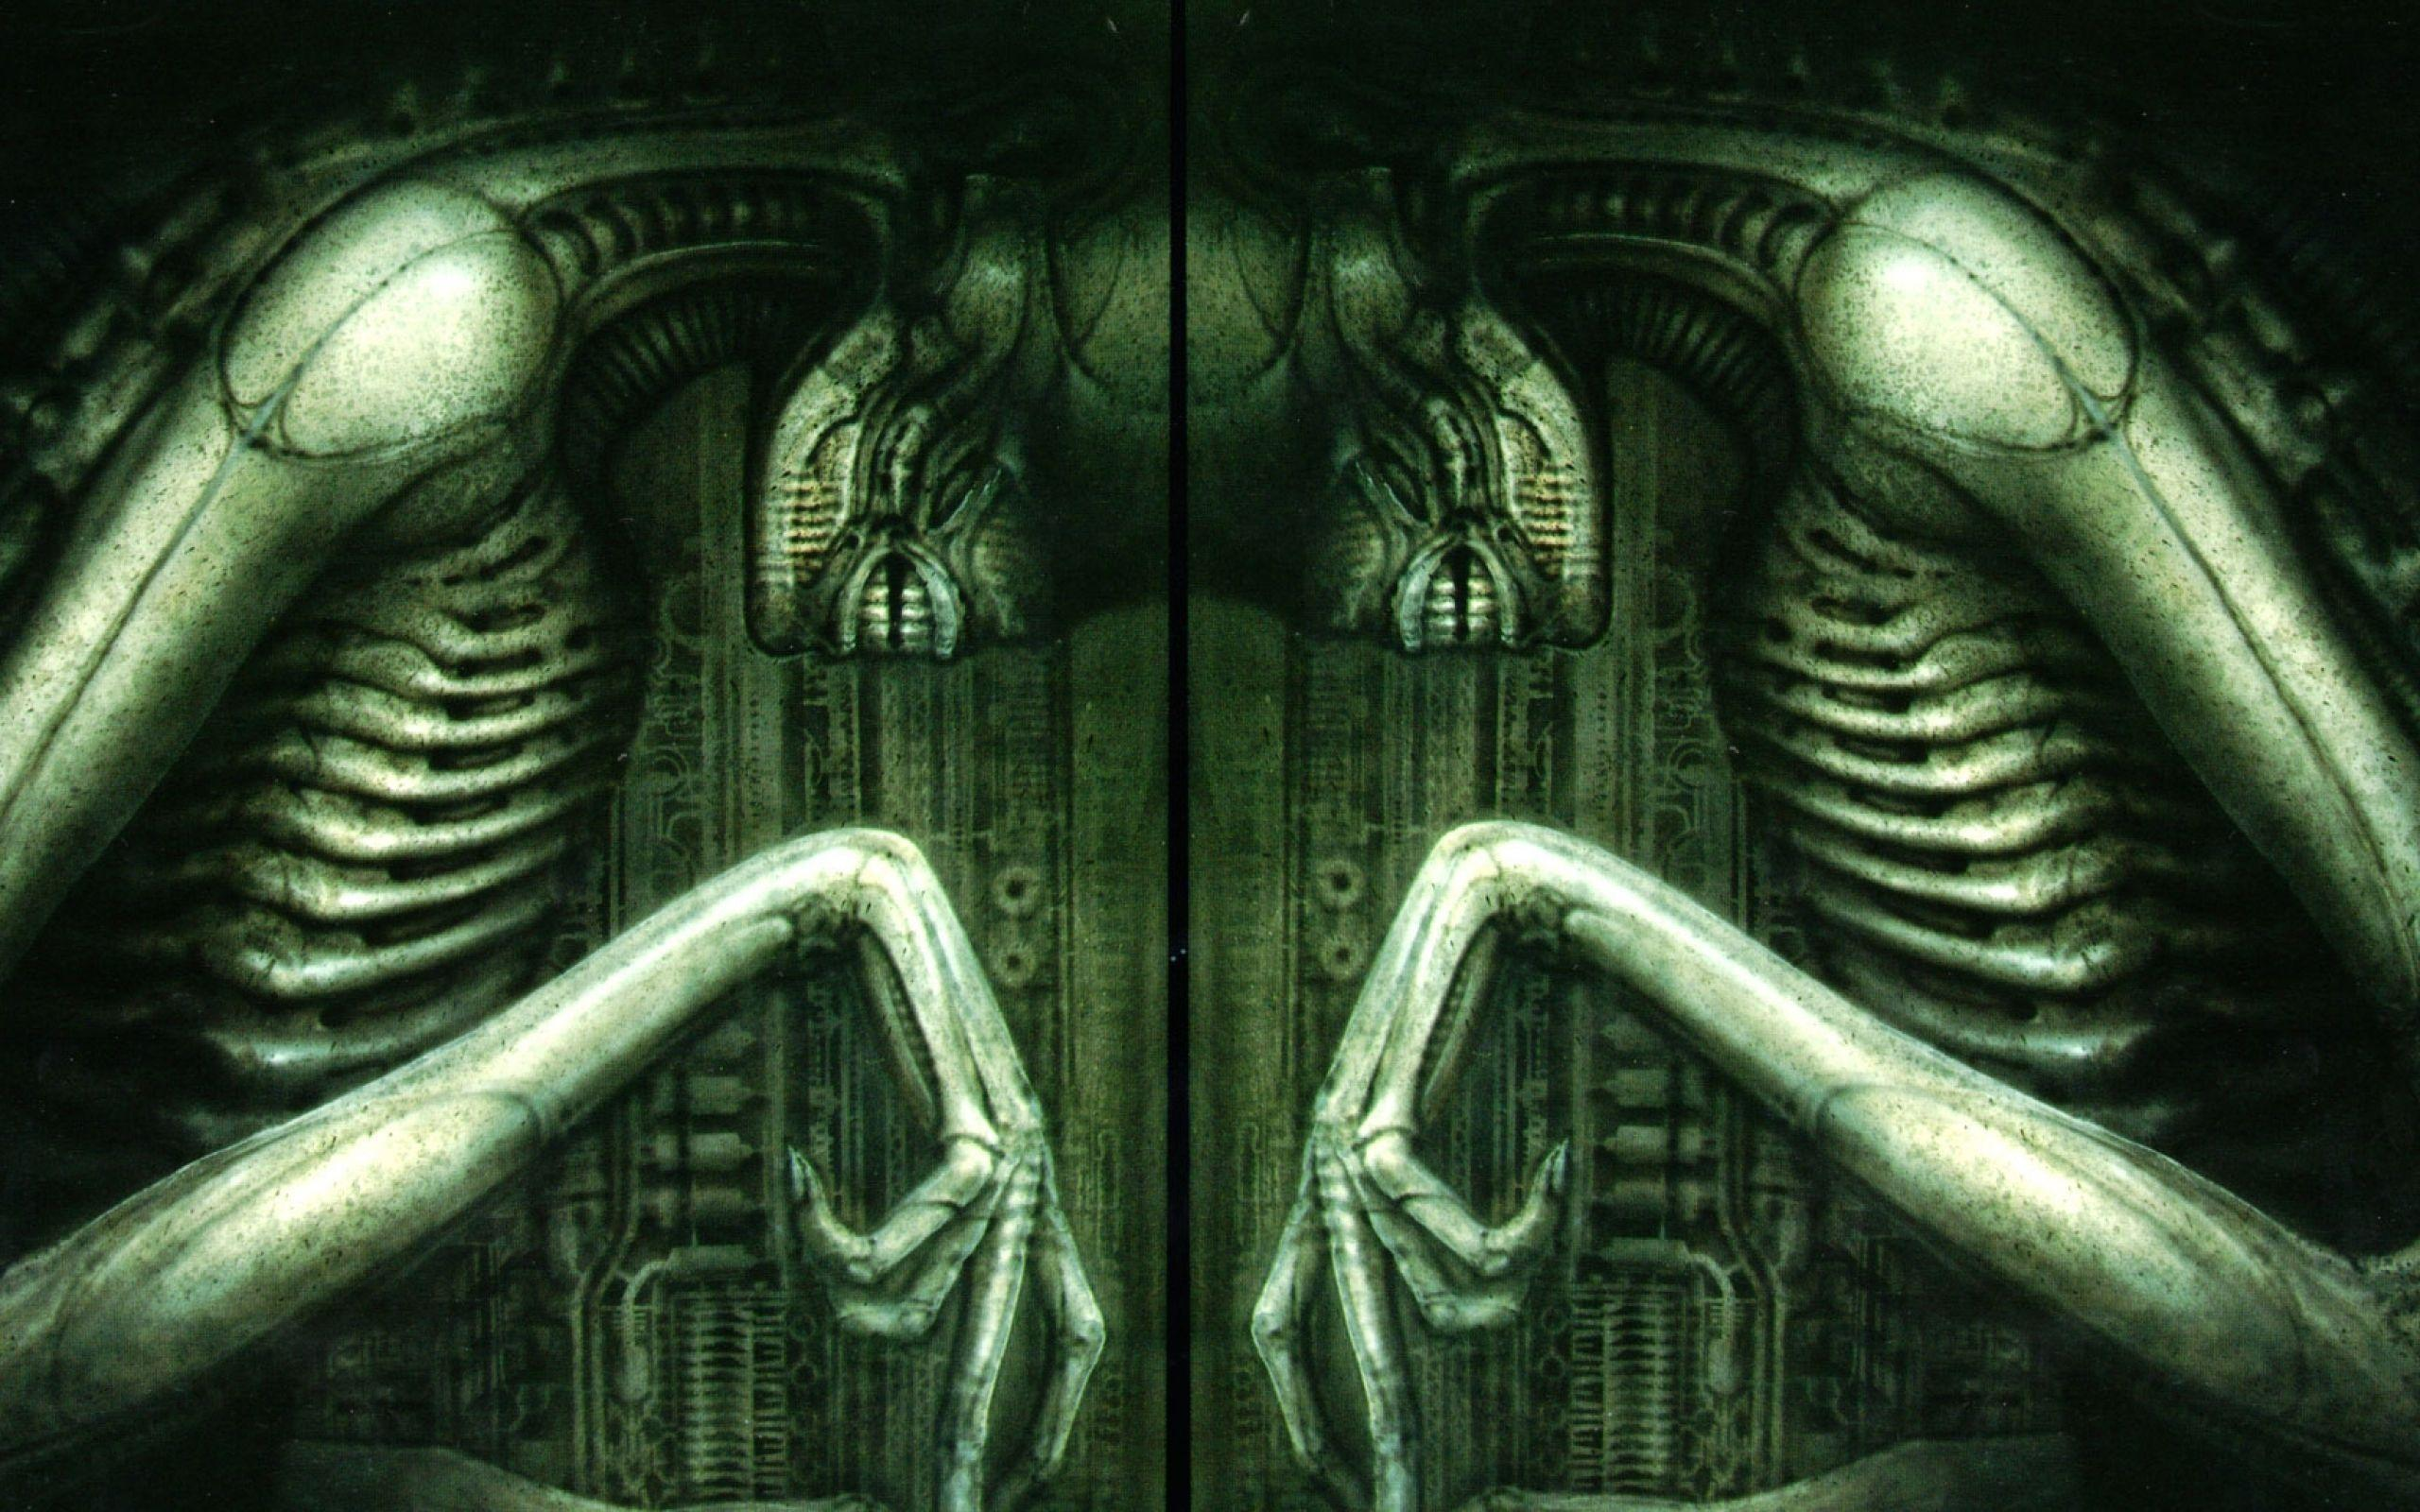 Sculpture Hd Wallpapers H R Giger Wallpapers Wallpaper Cave